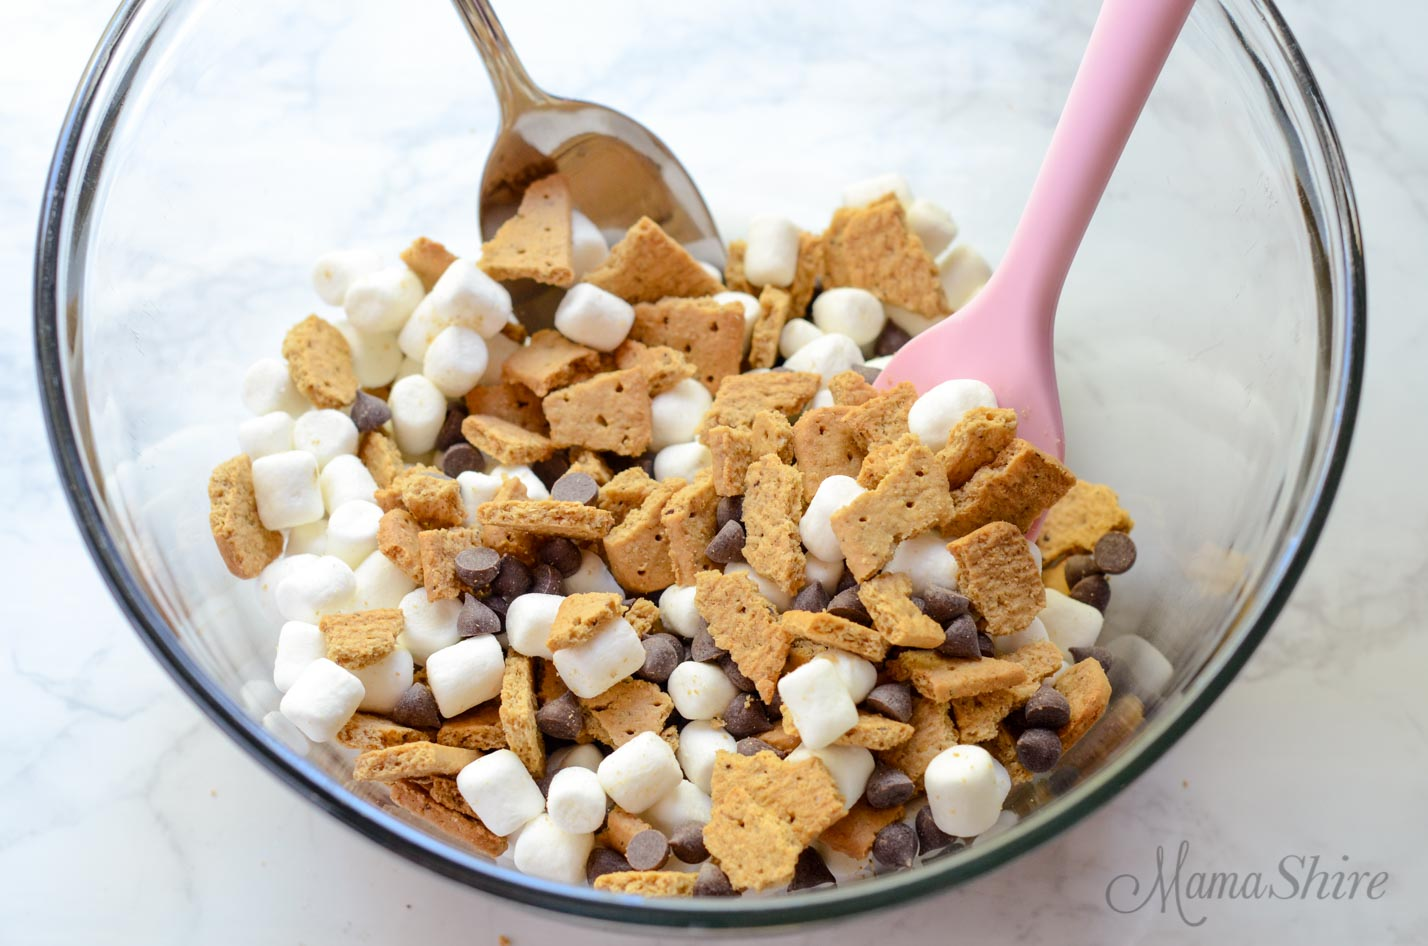 A mixing bowl with crushed graham cracker, chocolate chips, and marshmallows.